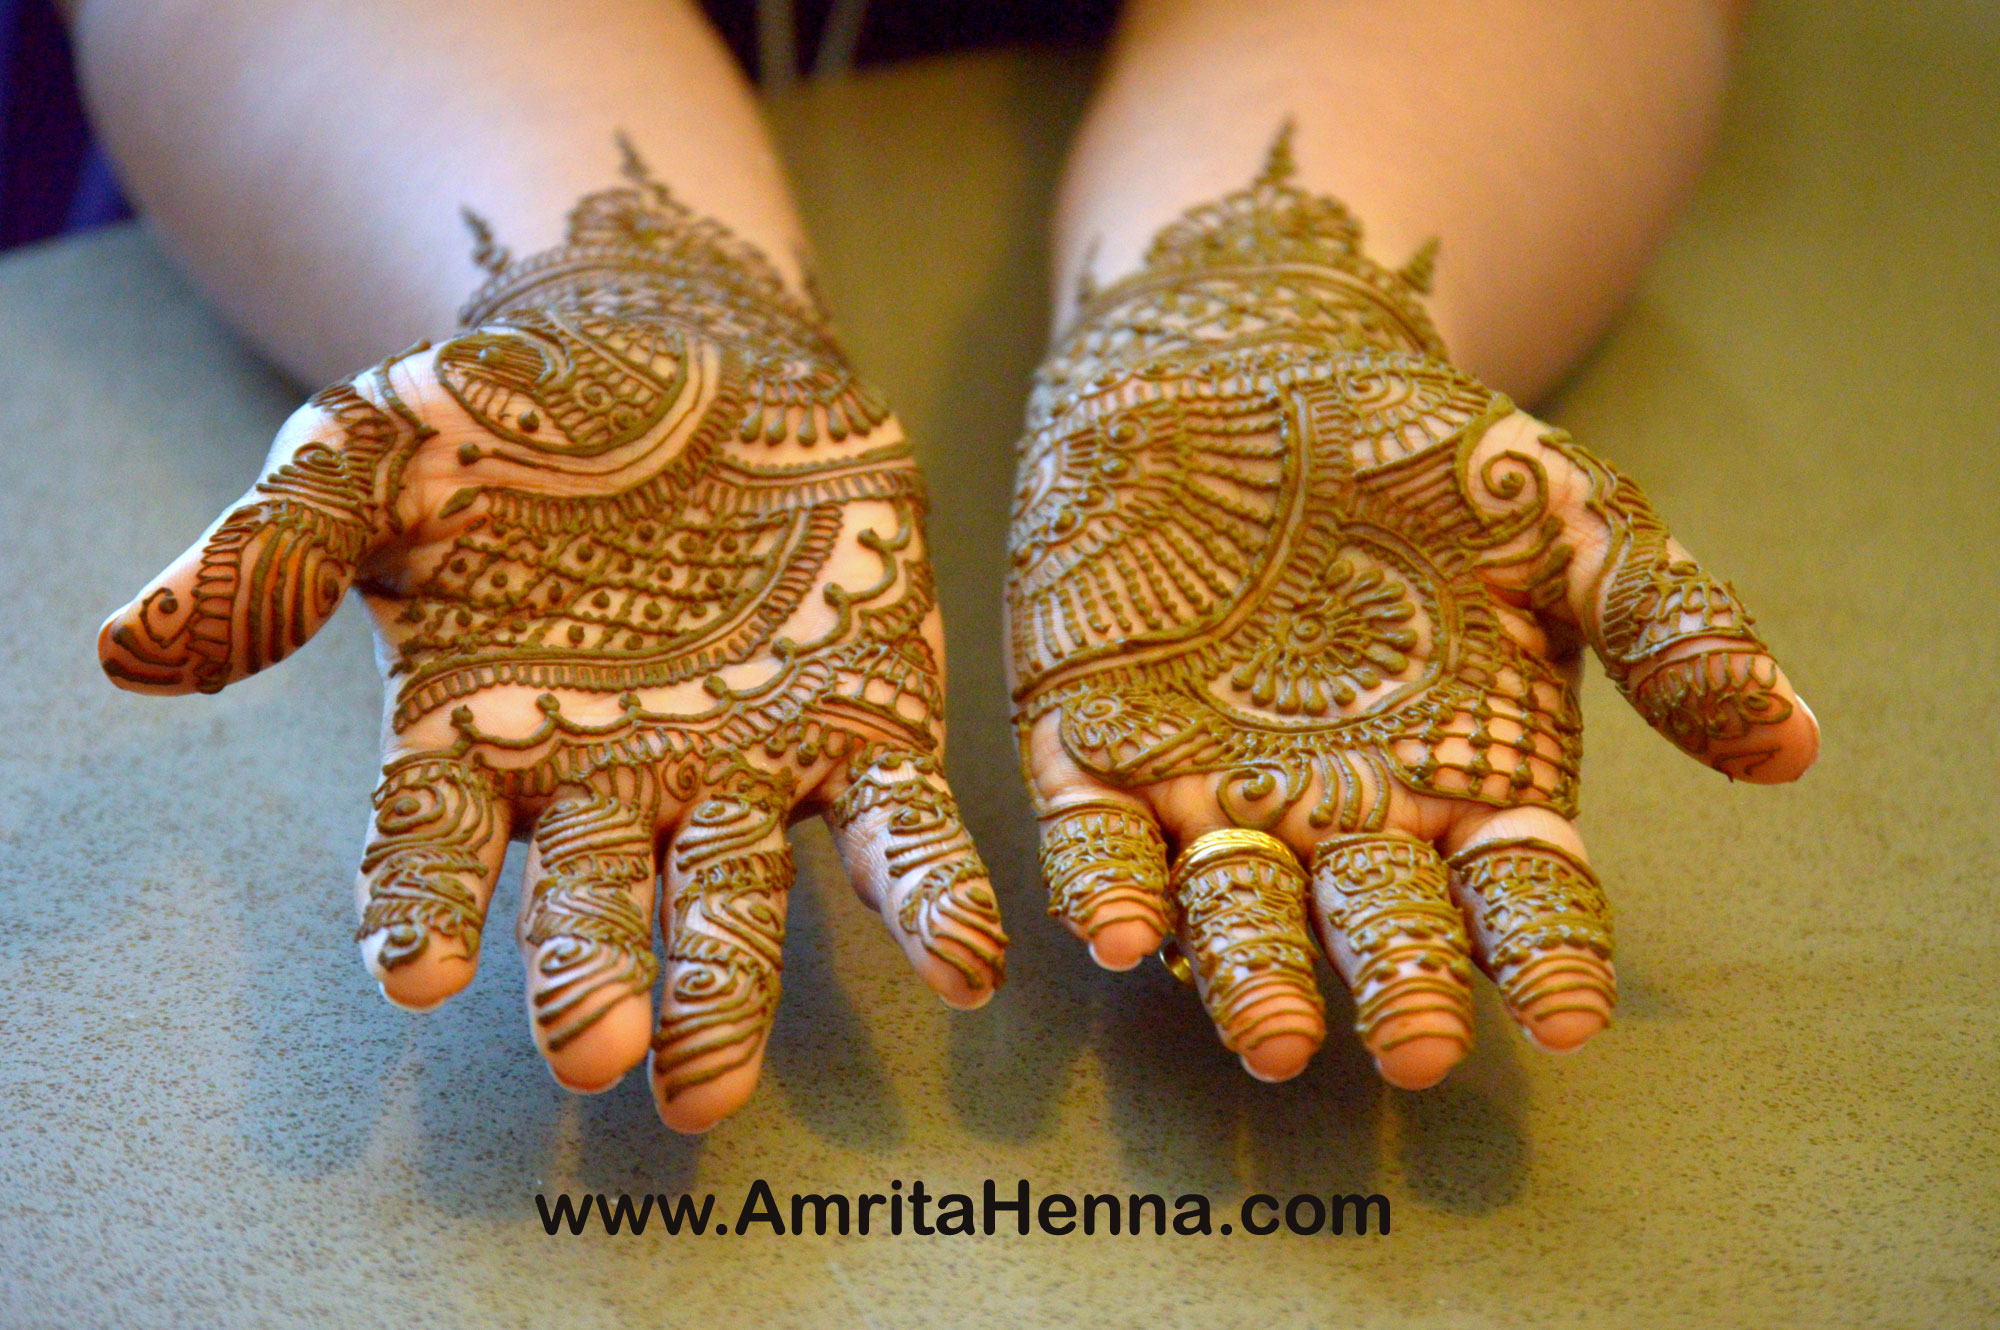 TOP 10 HENNA MEHNDI DESIGNS FOR KARVA CHAUTH - TRADITIONAL INDIAN MEHENDI DESIGNS FOR KARWA CHAUTH - INDIAN KARWACHAUTH HENNA DESIGNS - TOP 10 TRADITIONAL MEHANDI IDEAS FOR THIS KARWA CHAUTH - 10 TRADITIONAL MARWARI MEHNDI DESIGNS FOR INDIAN FESTIVAL KARVACHAUTH - BEST HENNA DESIGNS FOR KARWA CHAUTH WITH PHOTOS - LATEST MEHNDI FOR KARVACHAUTH - KARWACHAUTH HENNA MEHNDI PARTY IDEAS - BEST INDIAN MEHENDI DESIGNS - 10 MUST TRY KARVACHAUTH MEHNDI DESIGNS - 10 STUNNING MEHENDI DESIGNS FOR KARWA CHAUTH - INDIAN FESTIVAL KARVA CHAUTH - SIMPLE AND BEAUTIFUL FULL HANDS DESIGNS FOR INDIAN WOMEN - UNIQUE KARWA CHAUTH HENNA MEHENDI DESIGNS - 10 INTRICATE HENNA DESIGNS FOR KARWACHAUTH